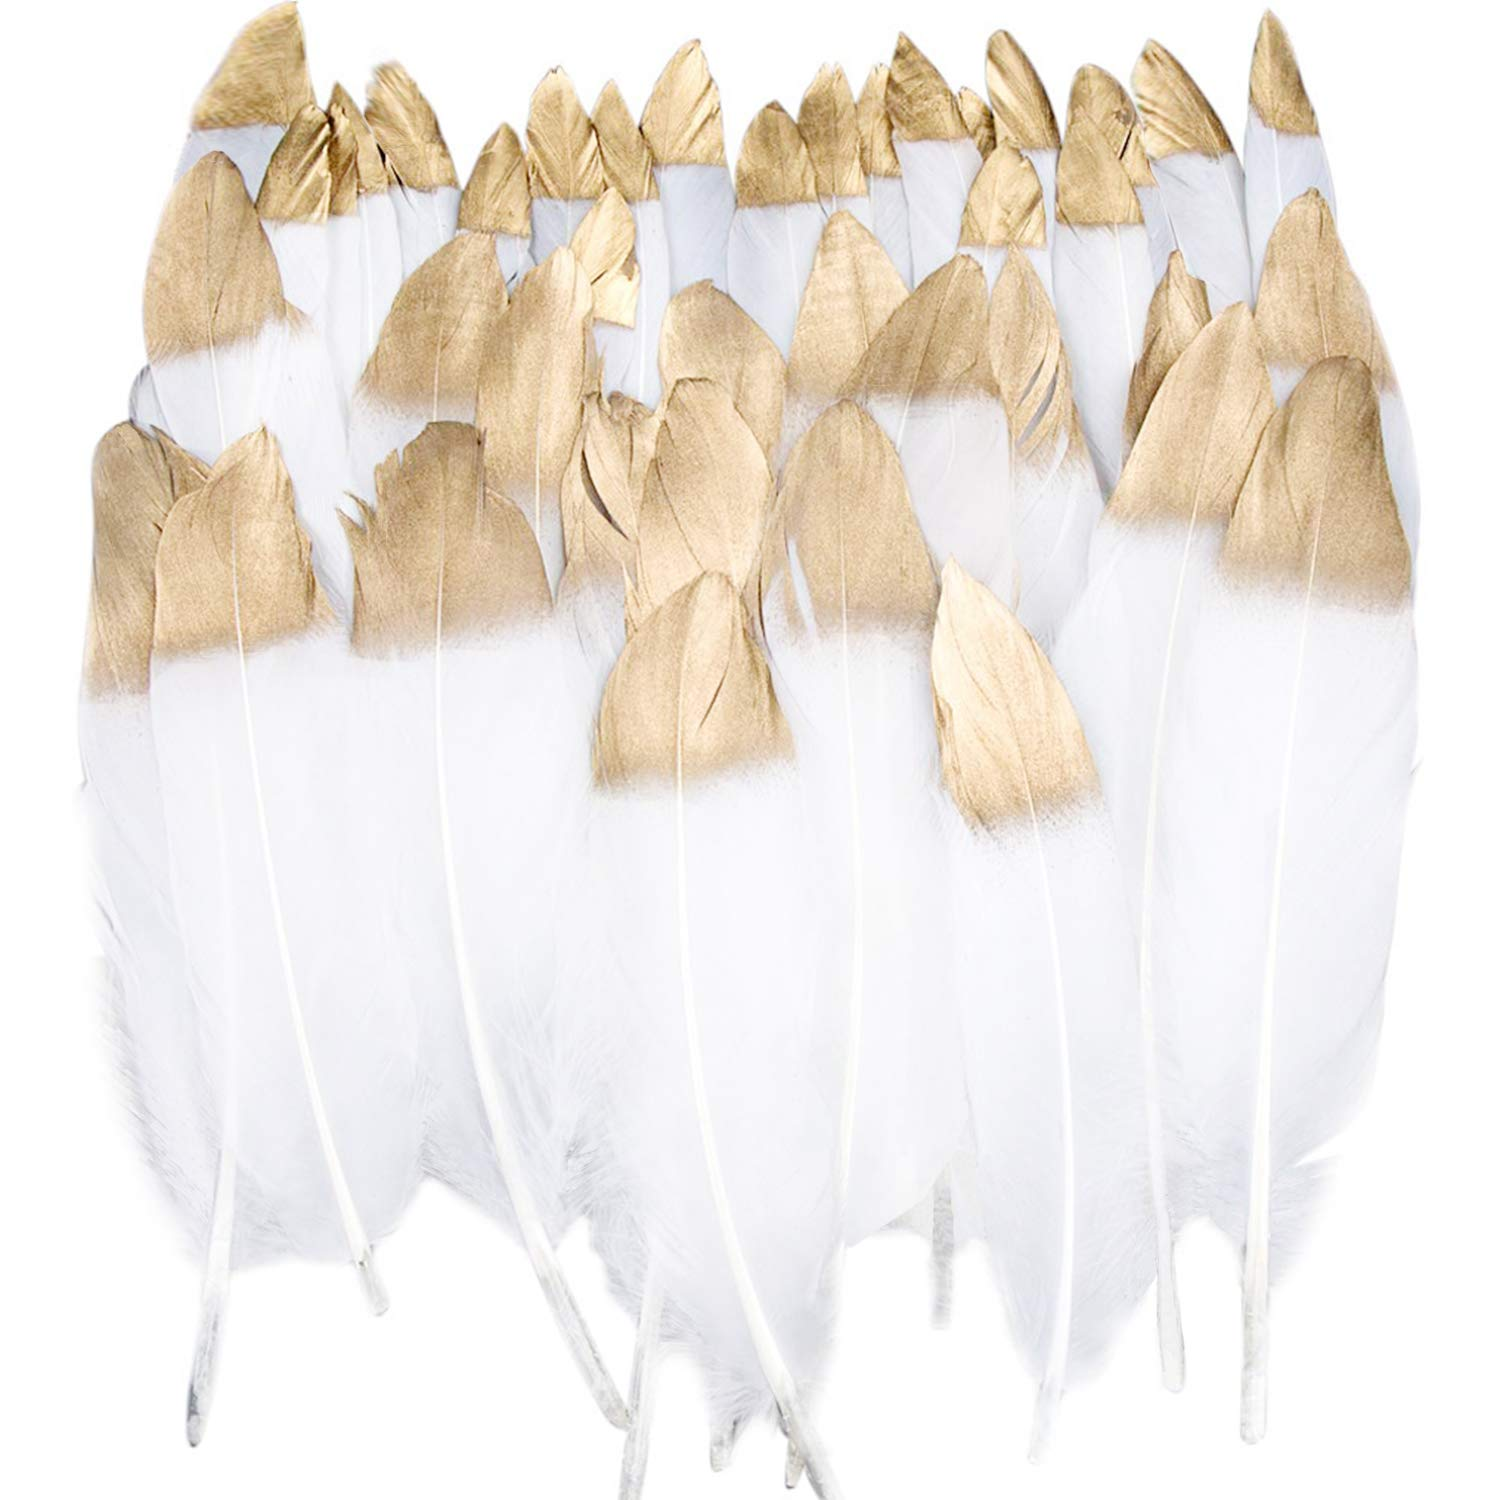 Benvo 40 Pcs Gold Dipped White Feathers 6-8 Inch Natural Feathers for Any Crafts Projects Feather Garlands Boho Bohemian Décor Nursery Home Bedroom Wall Decorations Party and Dream Catcher Supplies